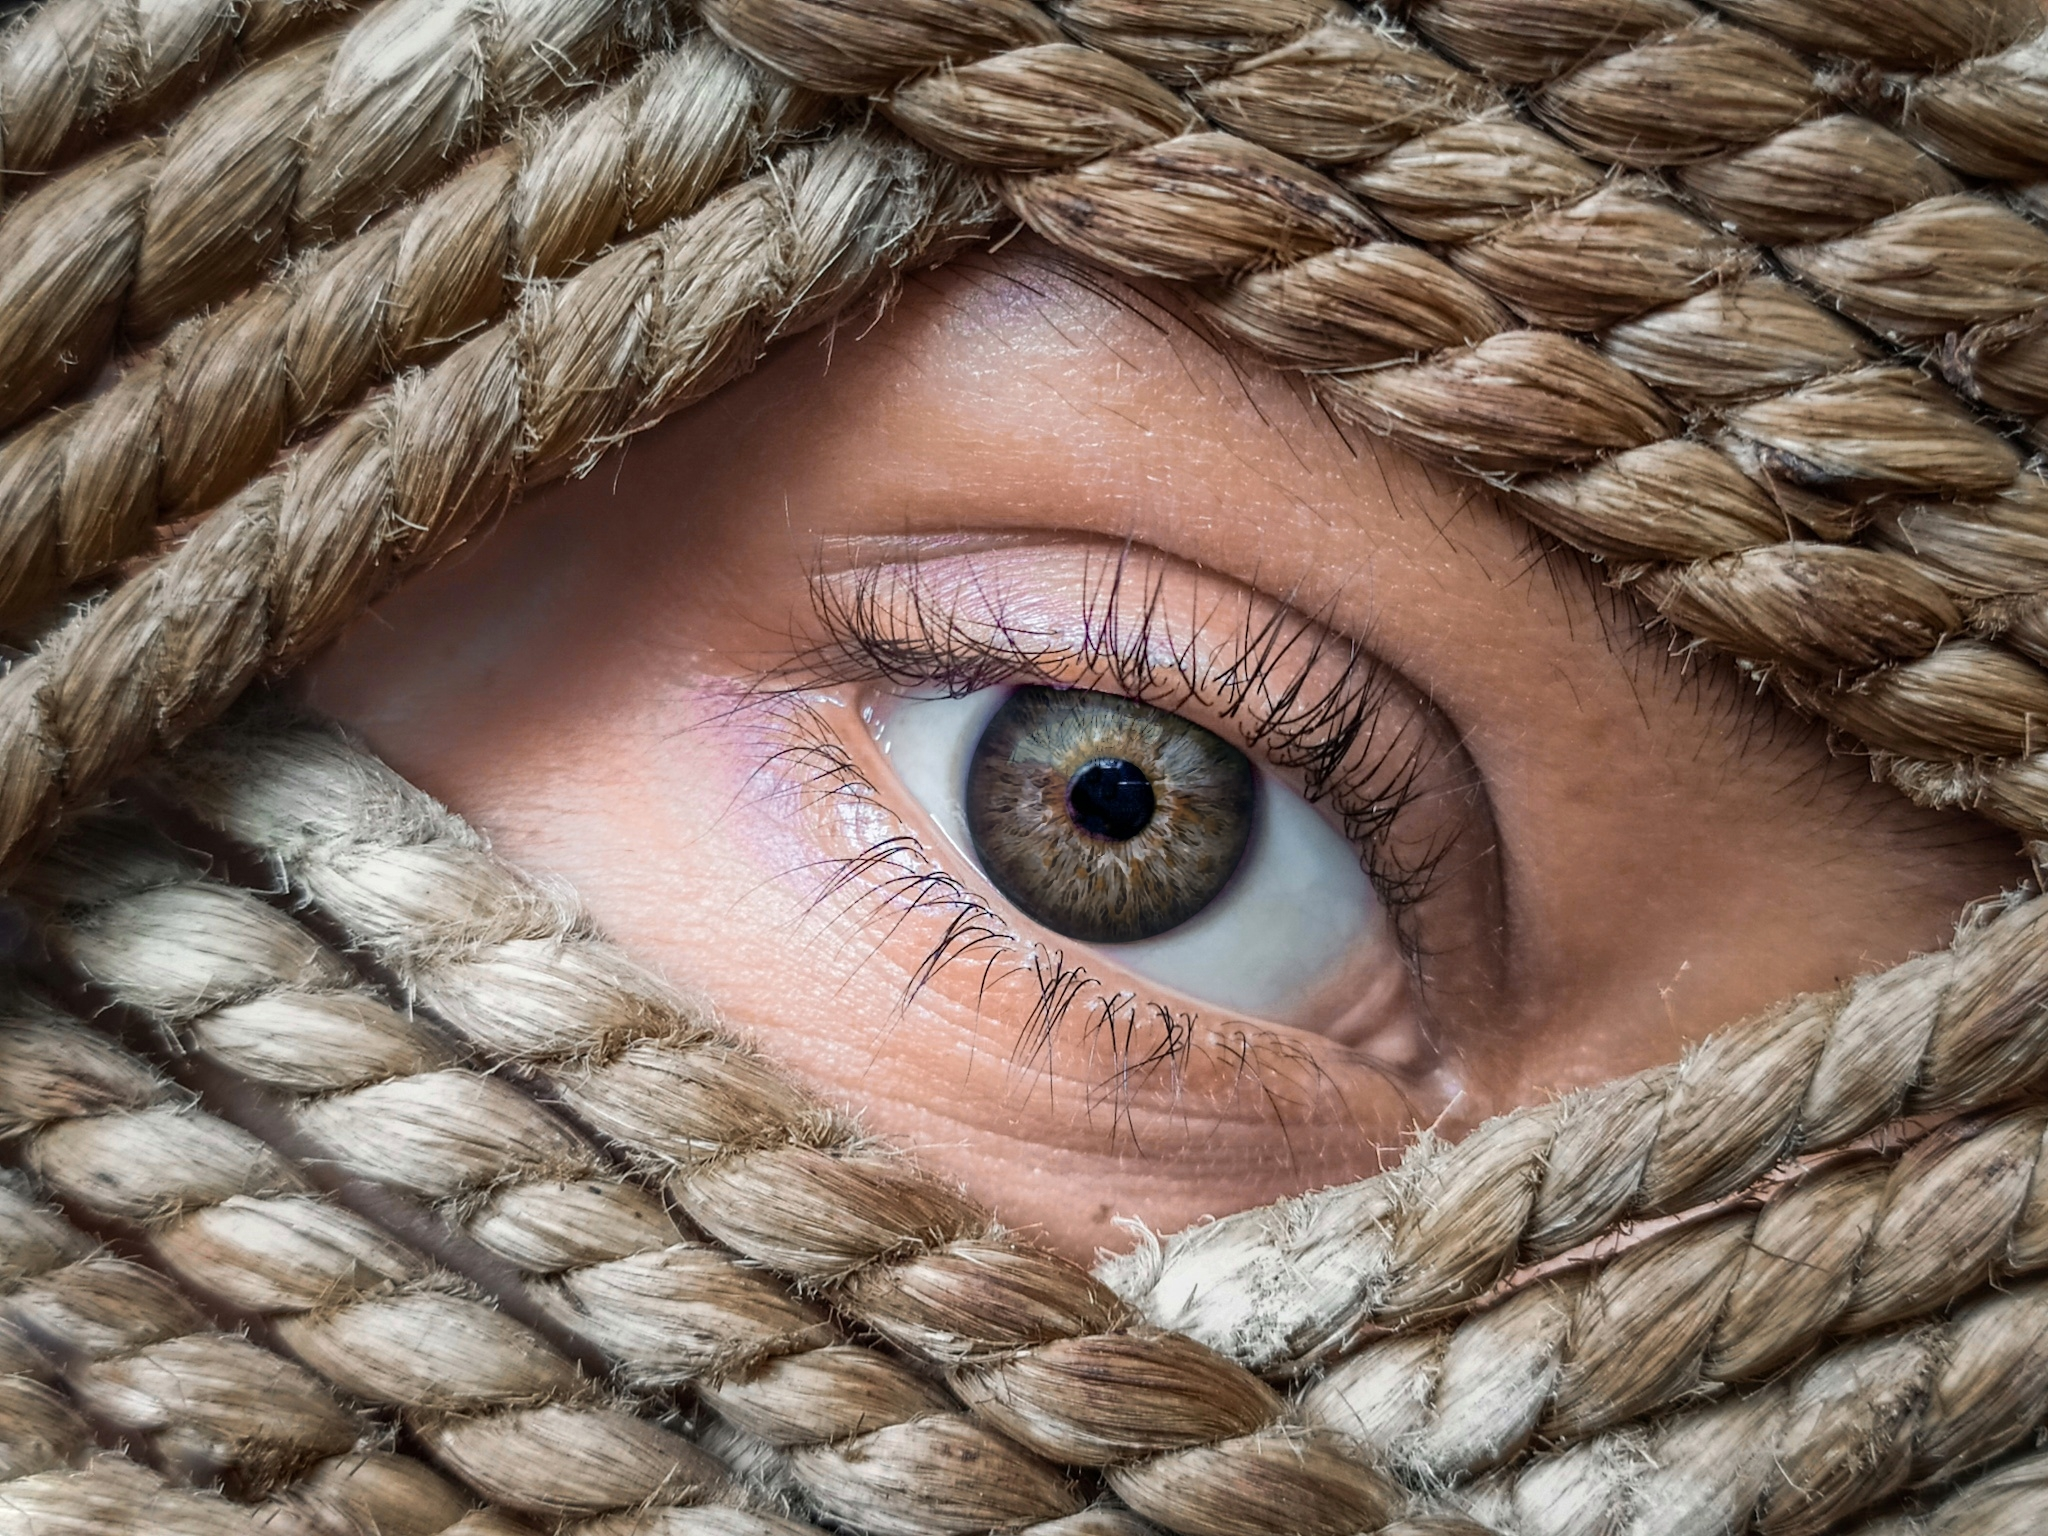 Looking through woven jute